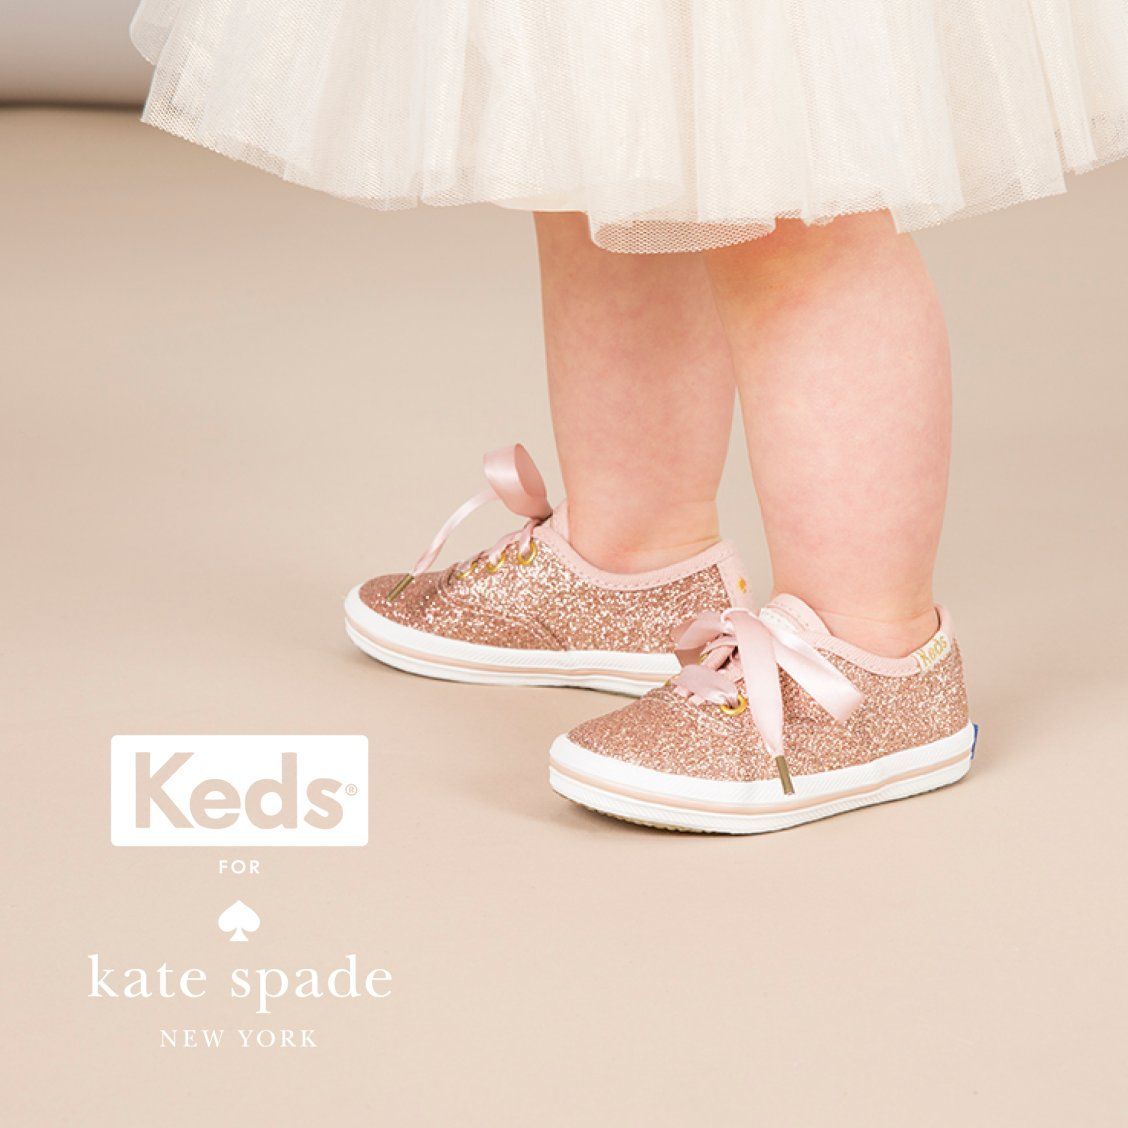 c4ce318d5fc Meet the shoes on every girl s wish list this year. Keds for Kate Spade New  York.